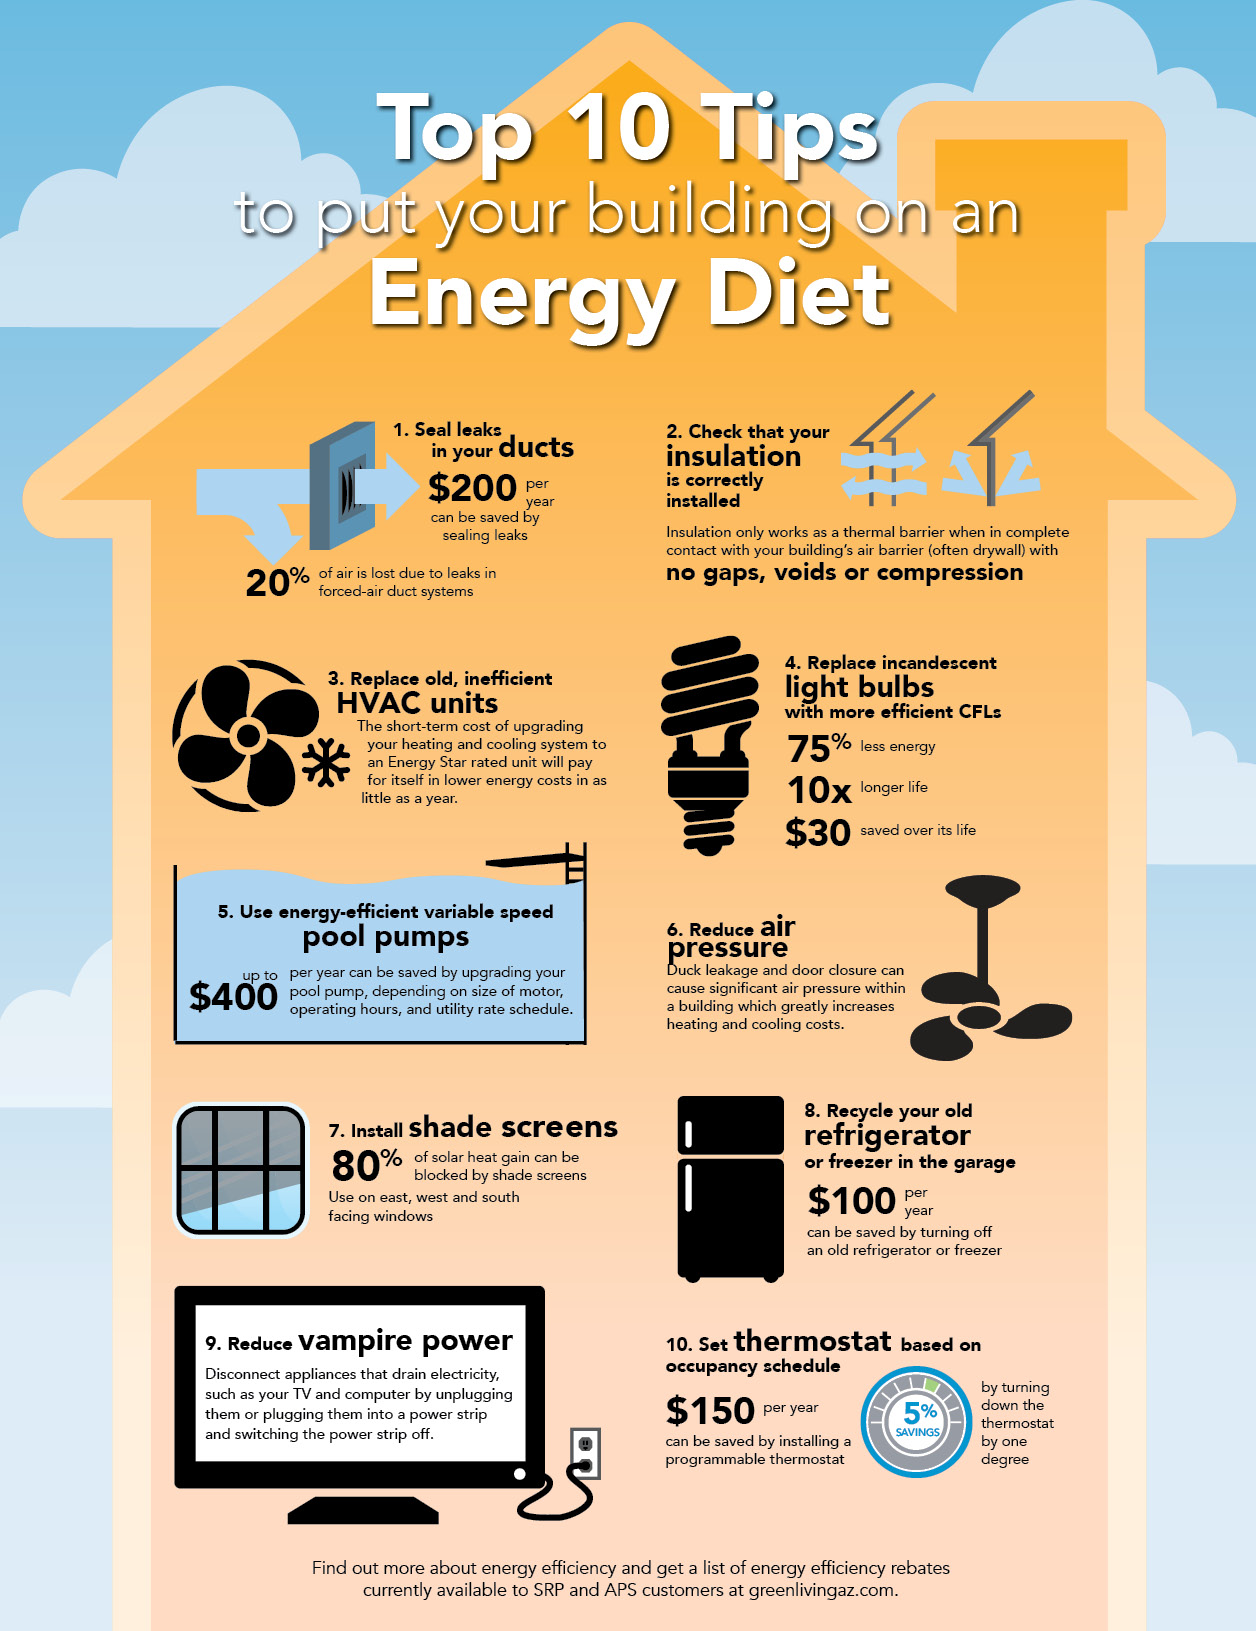 Saving energy tips images galleries for Best ways to save money when building a house